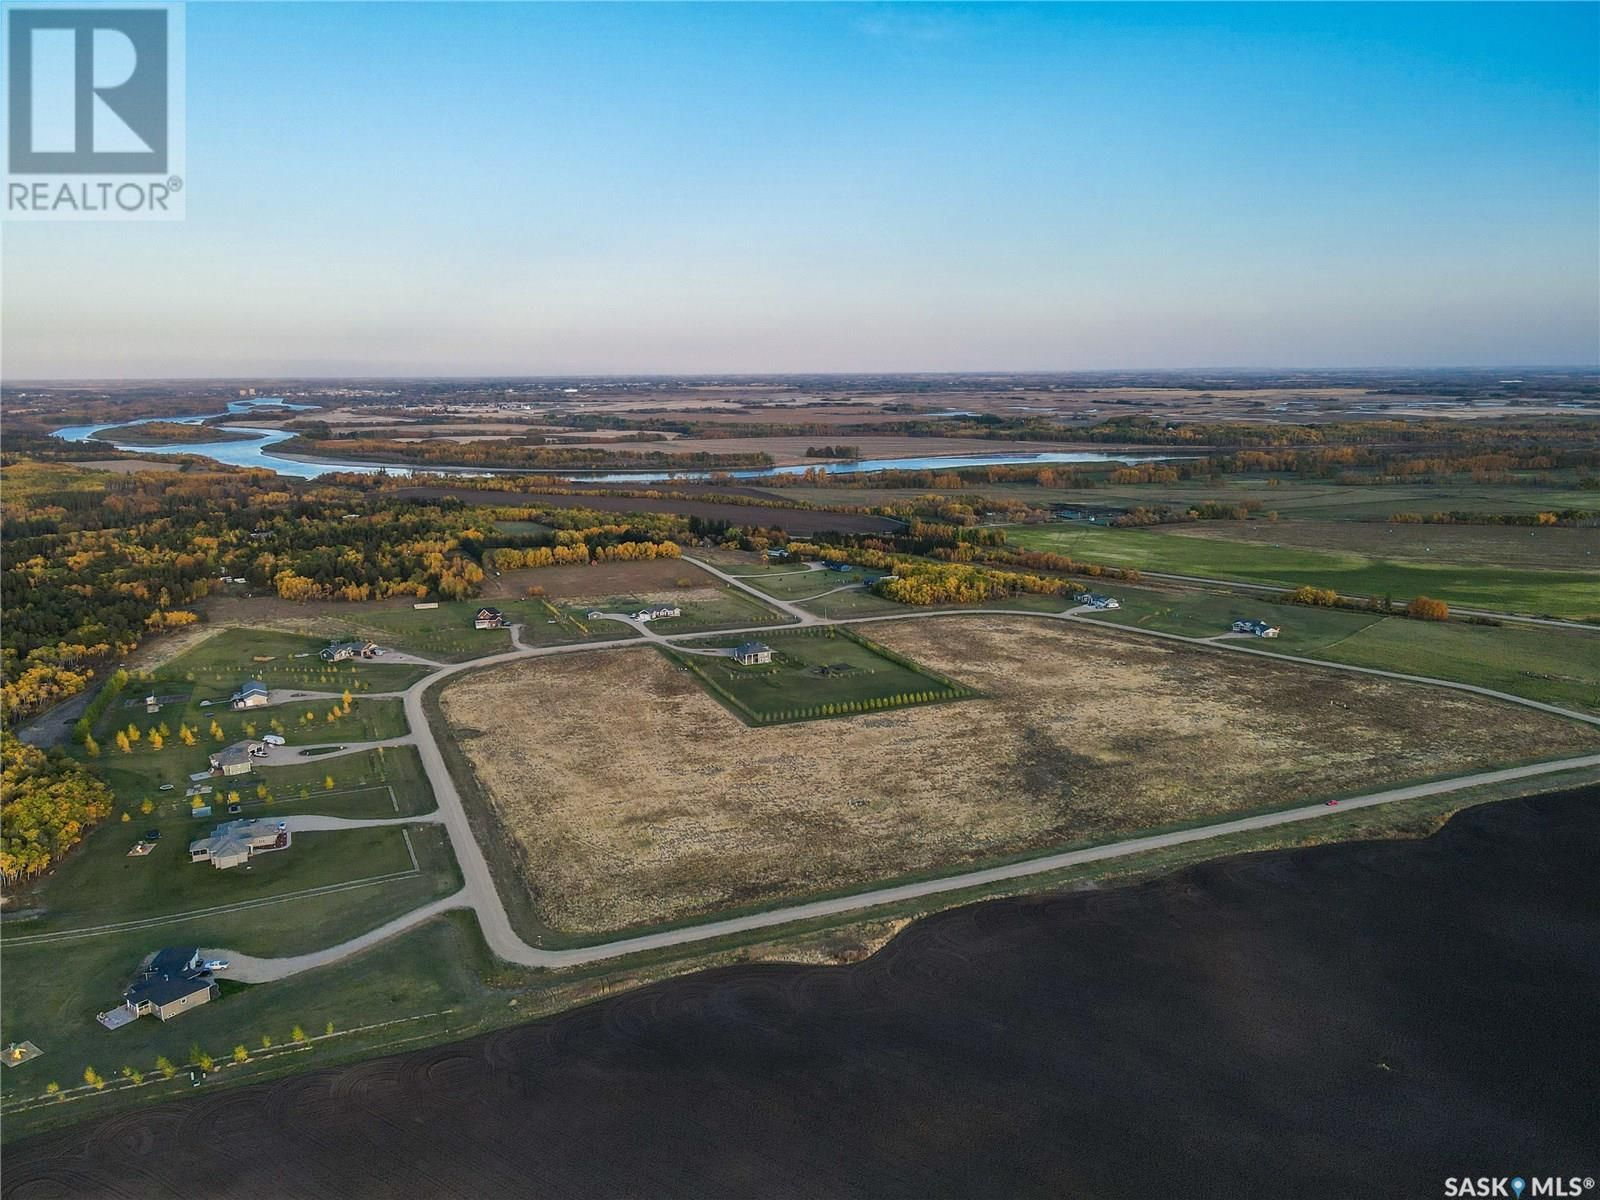 Main Photo: Hold Fast Estates Lot 1 Block 2 in Buckland Rm No. 491: Vacant Land for sale : MLS®# SK833994